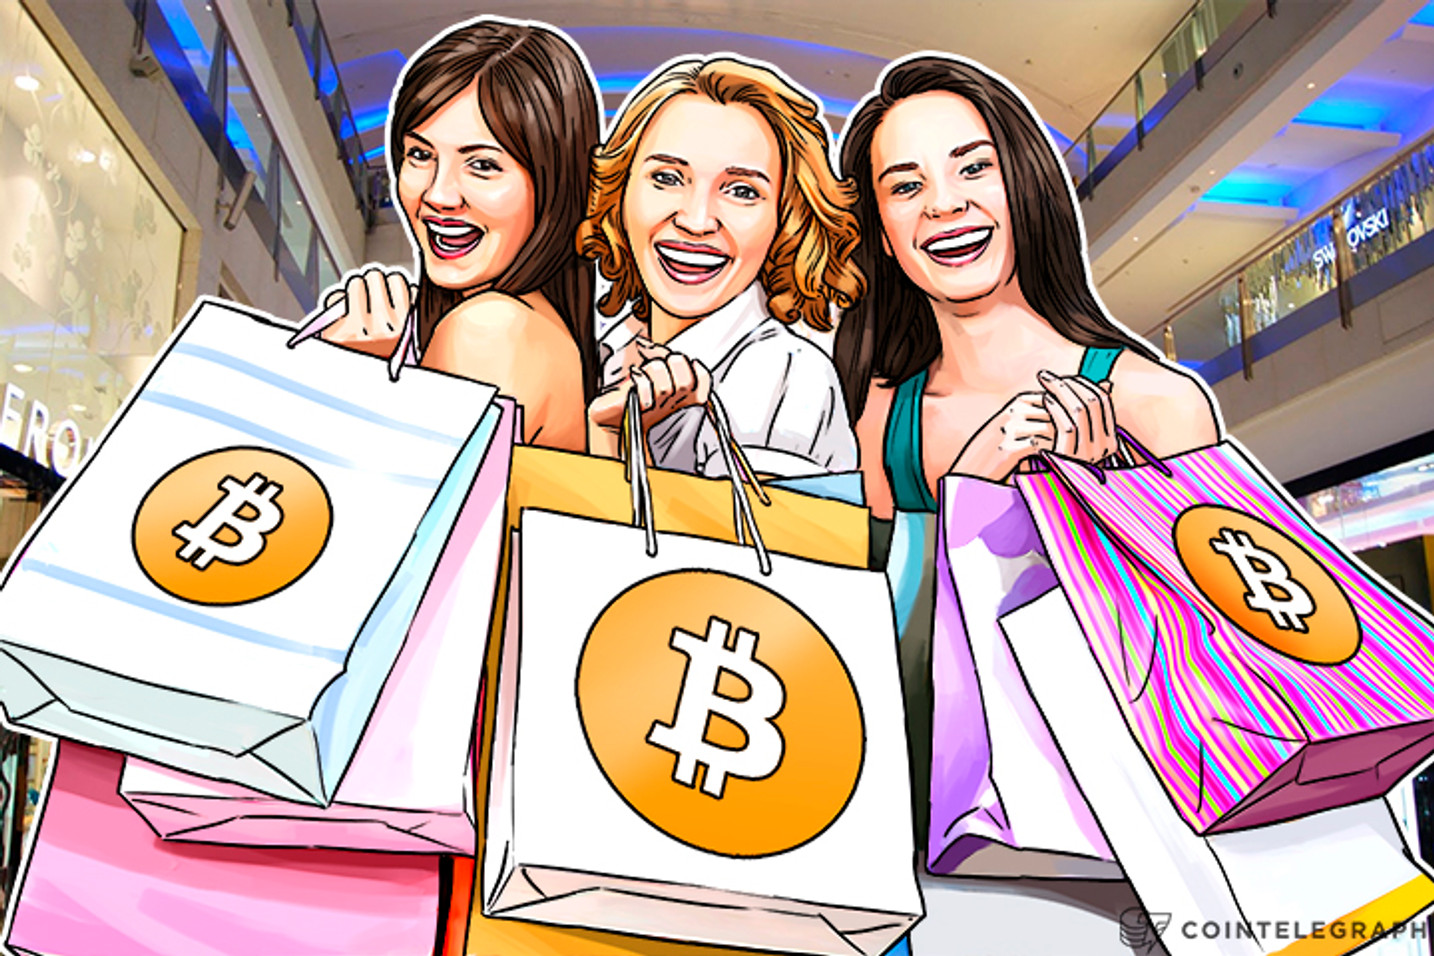 One Percent of US, Chinese Digital Shoppers Pay Online With Bitcoin, Altcoins